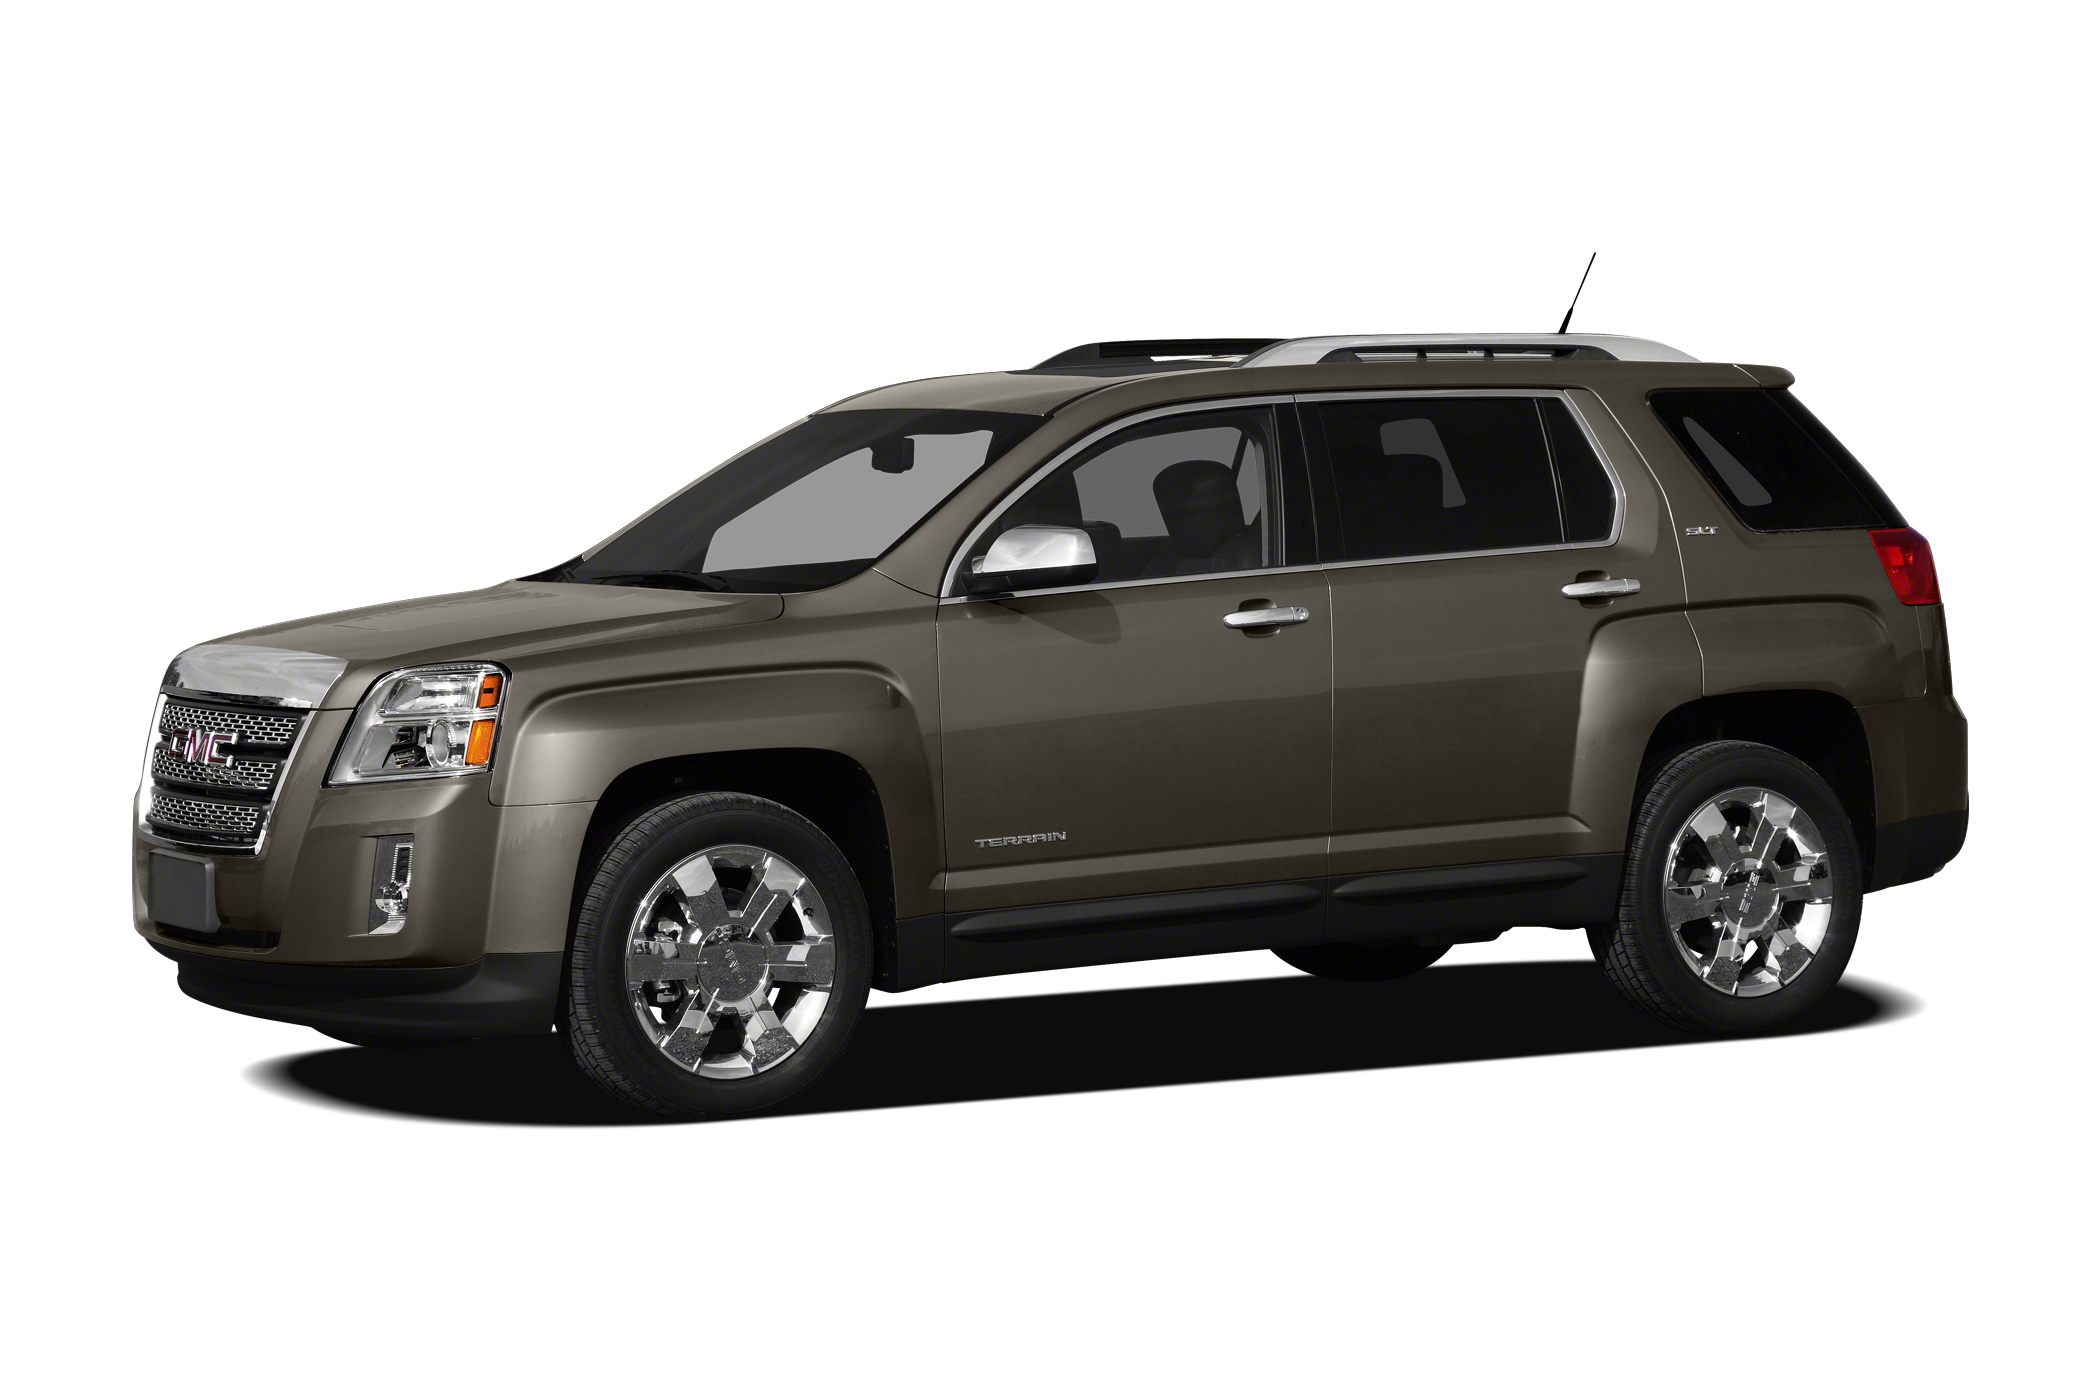 2012 GMC Terrain SLE-1 Certfied by CARFAX - NO ACCIDENTS and ONE OWNER Get the NEW look for th